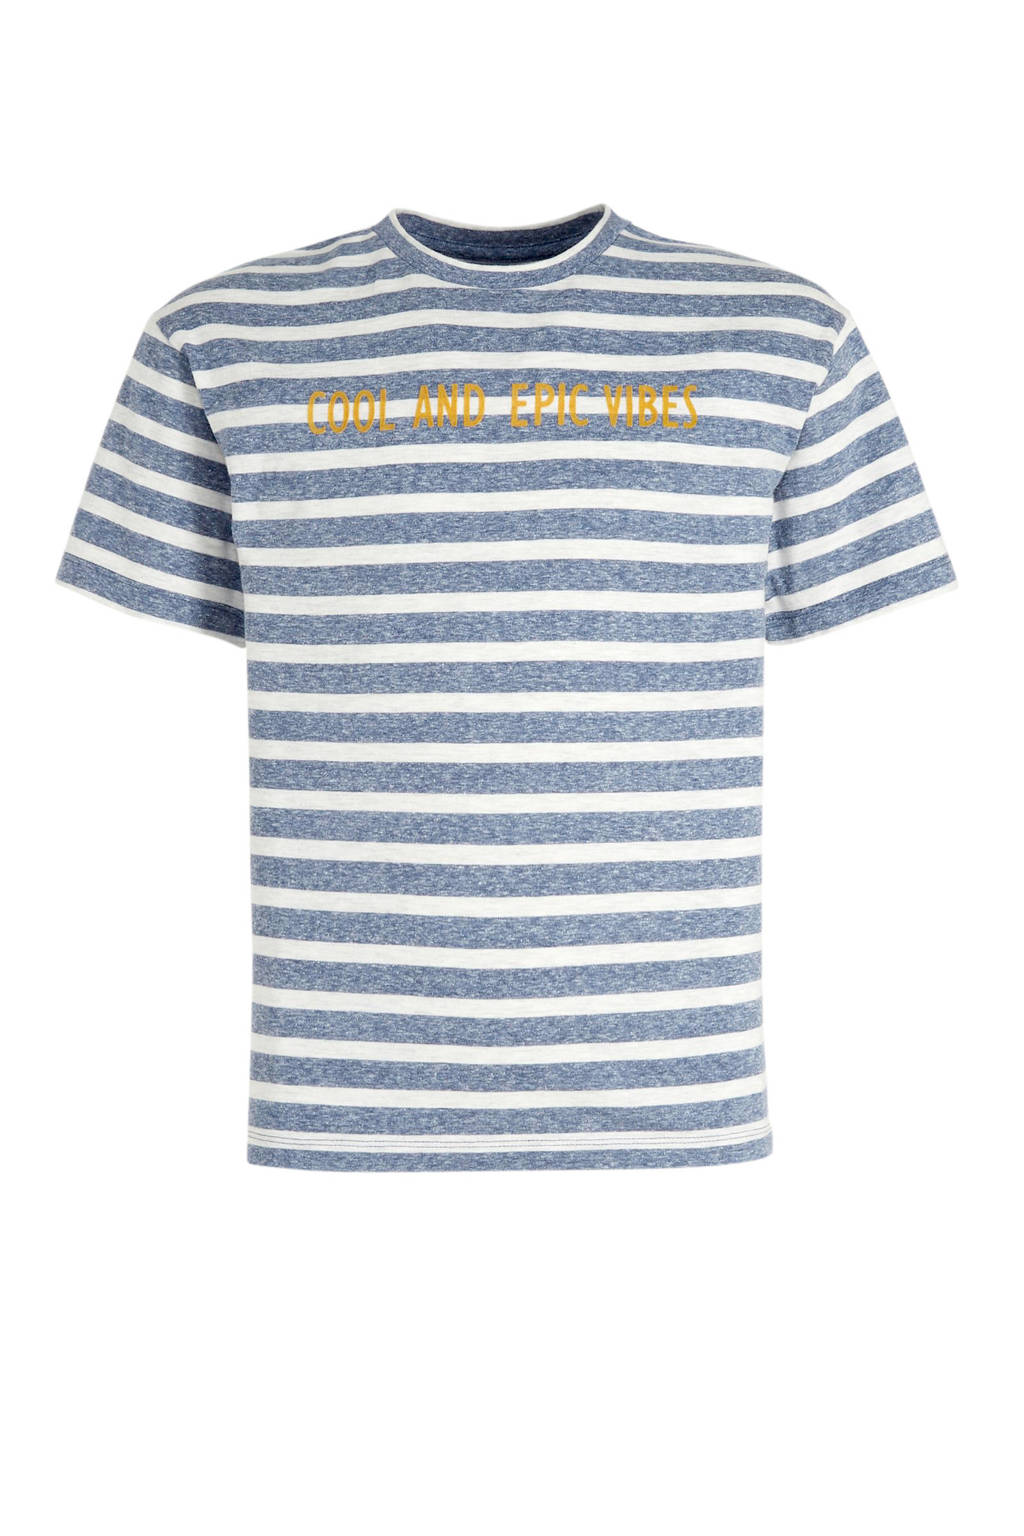 C&A Here & There gestreept T-shirt blauw/wit/geel, Blauw/wit/geel